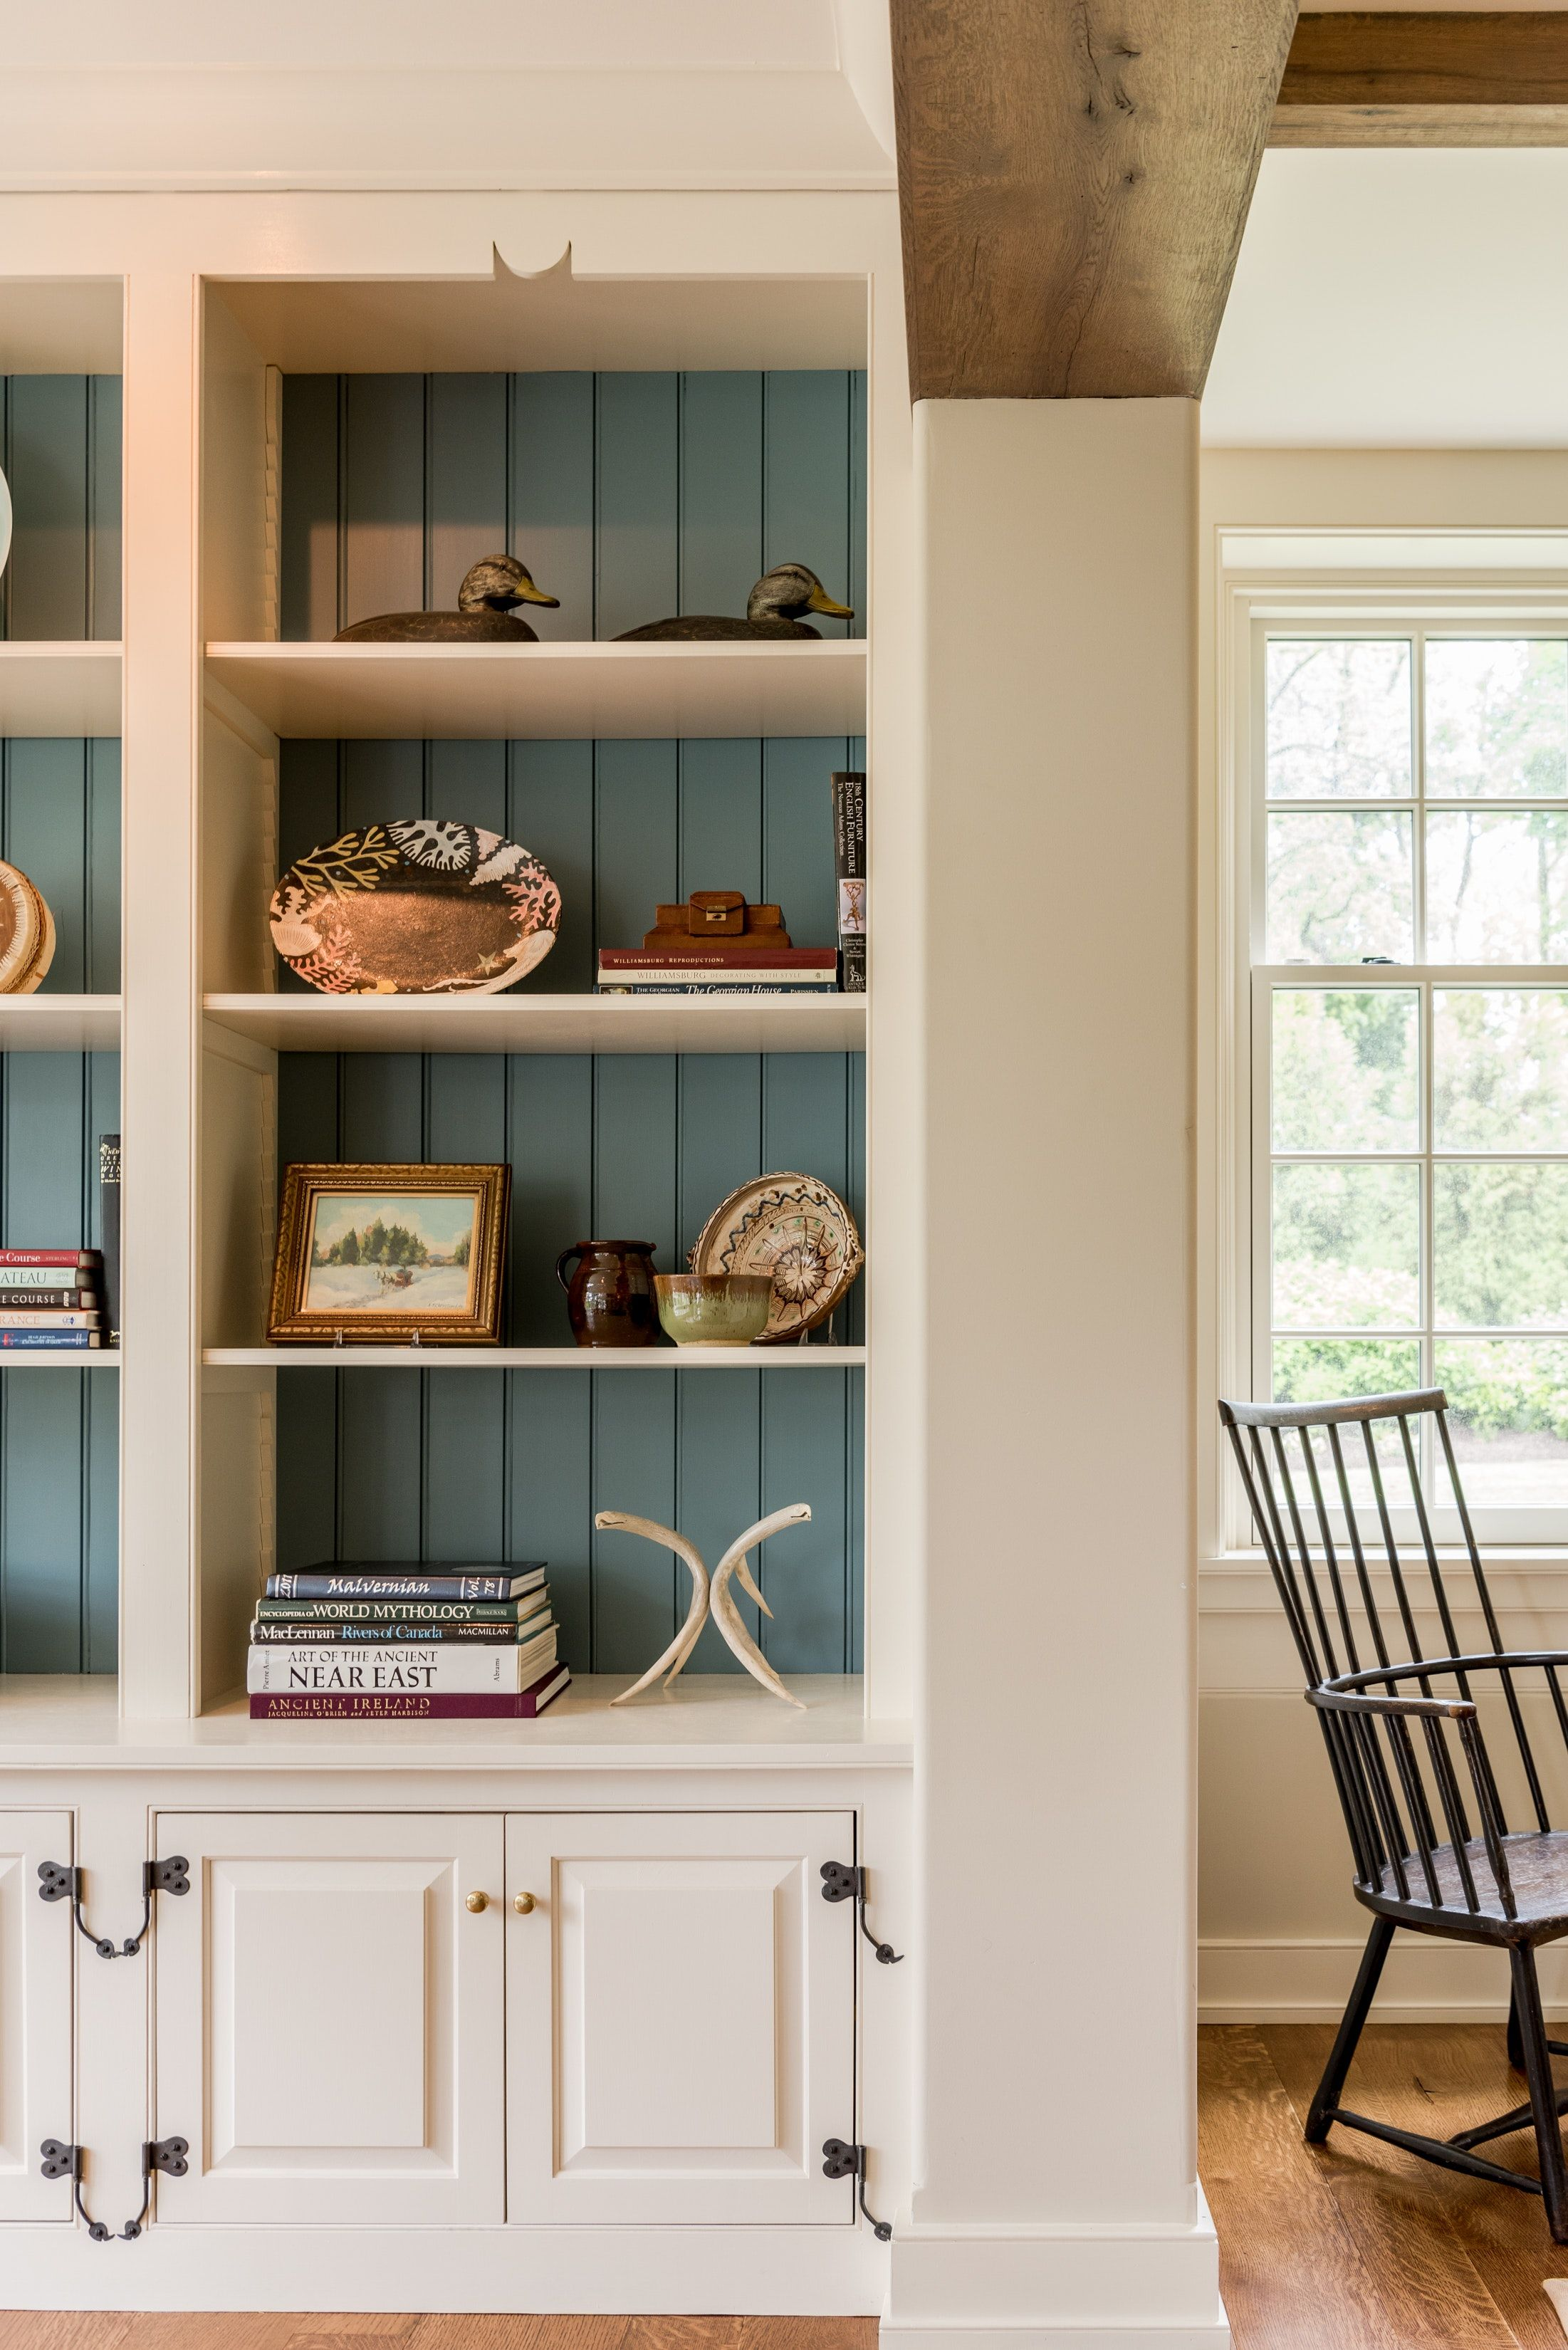 Home Office Built In Bookcase Detail With Rustic Wood Beam In Pennsylvania Color Painted Shiplap In Back Of Built In Shelves Living Room Built In Cabinets Home